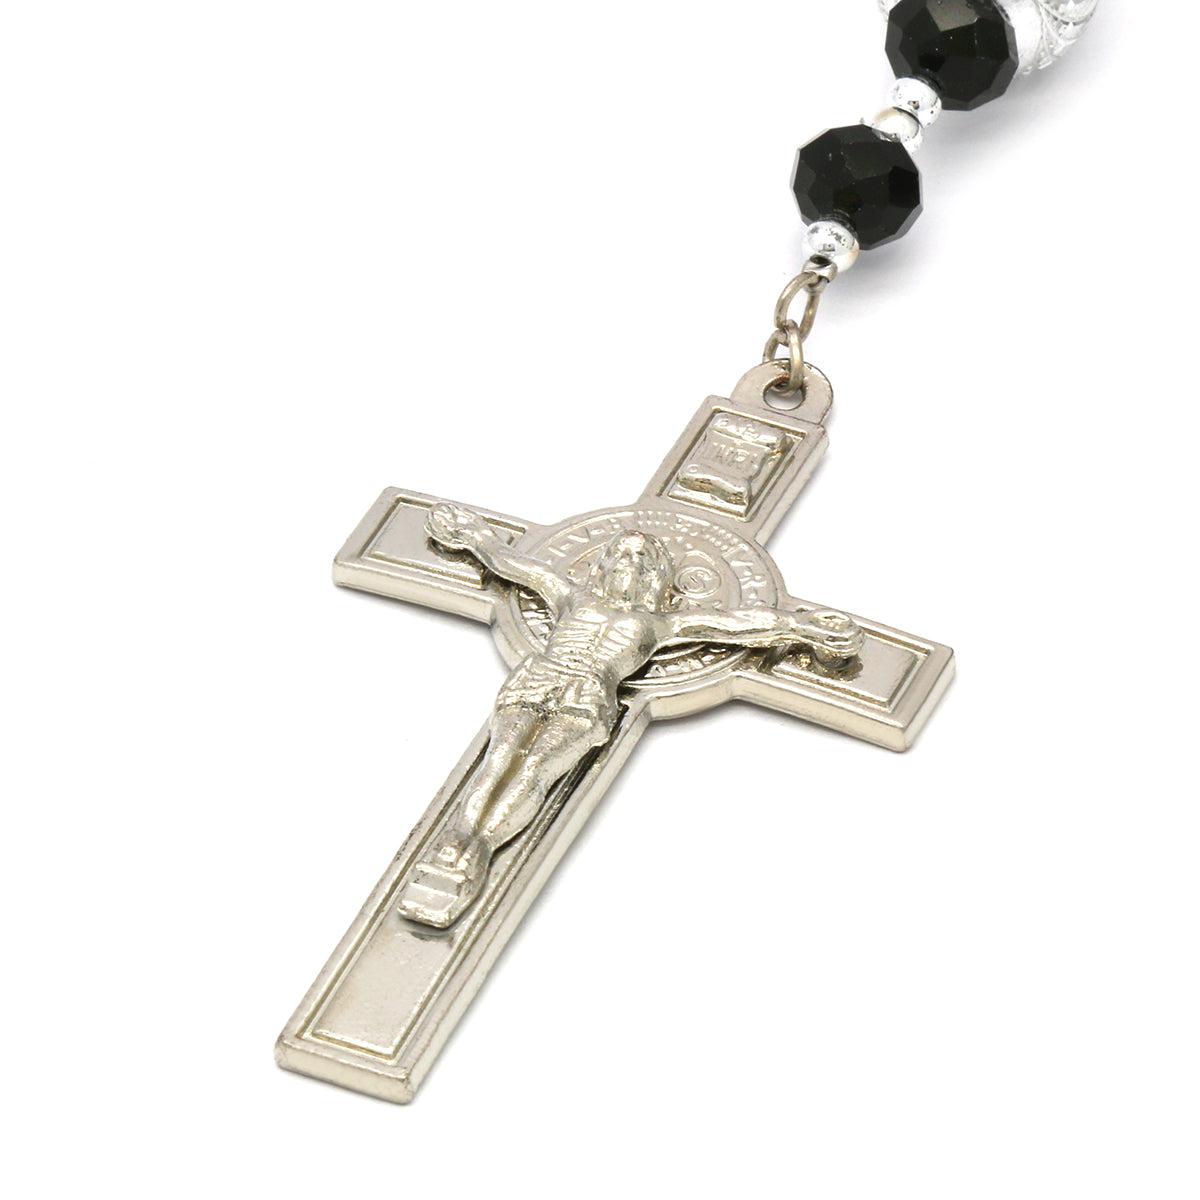 8MM Black Crystal Rosary With Cross Pendant